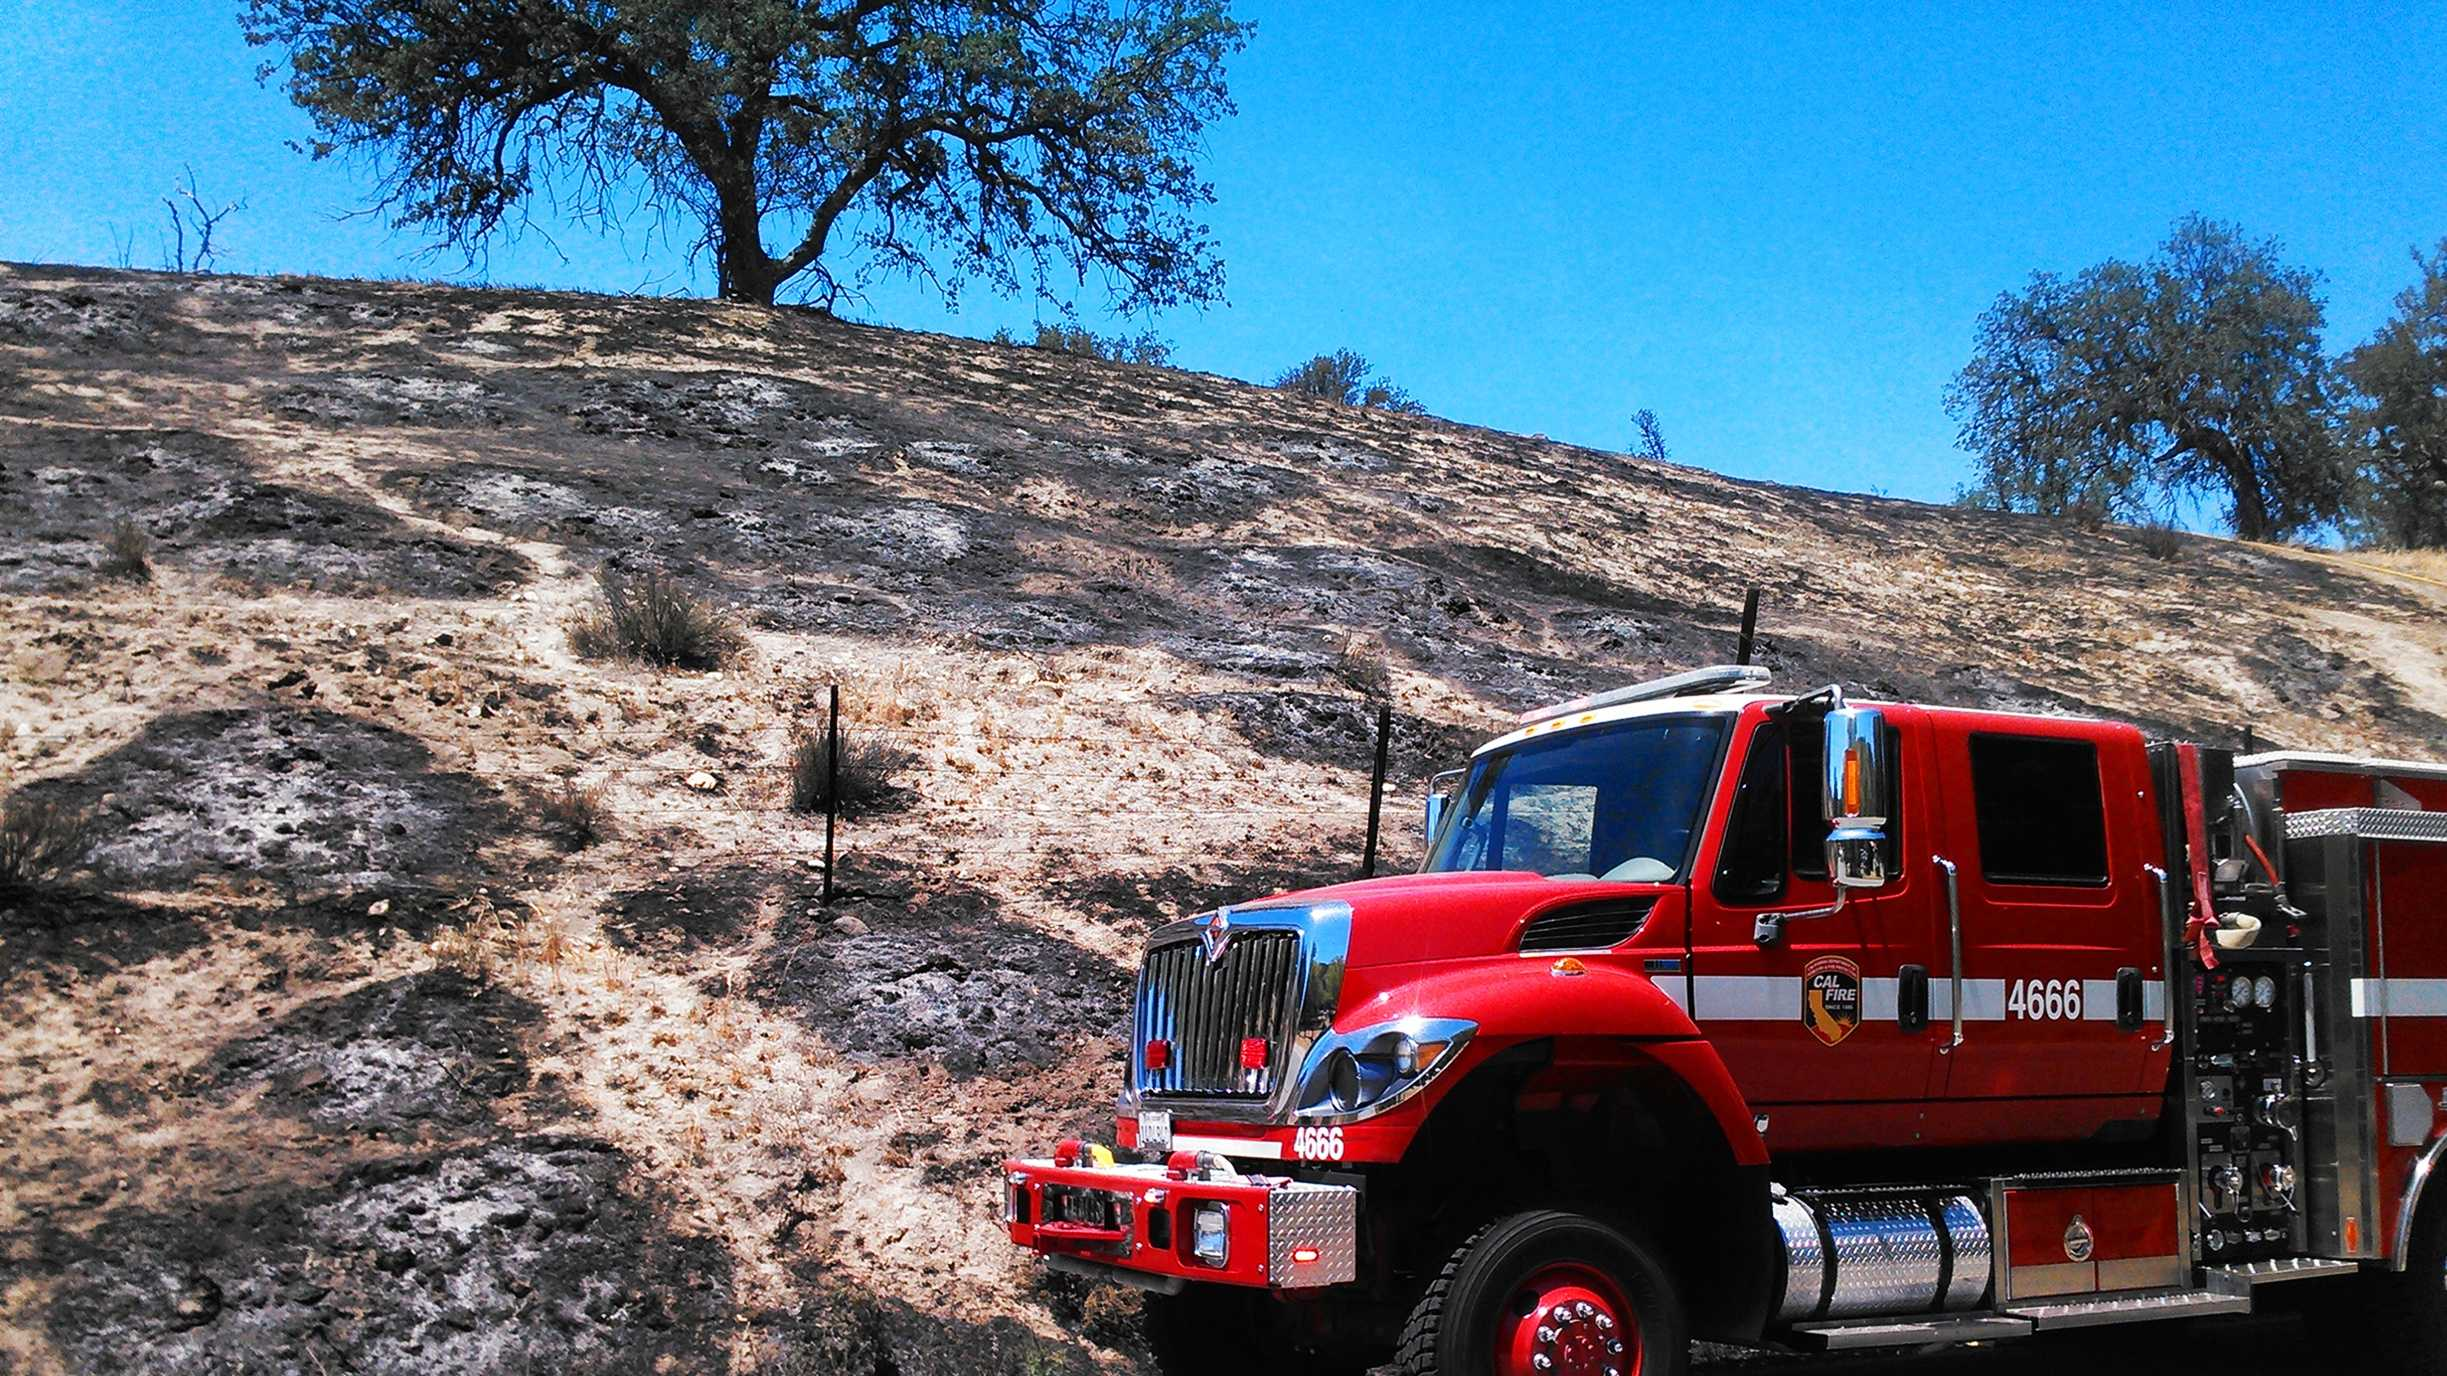 Ten acres were scorched in Pinnacles National Park by a wildfire. (May 12, 2015)